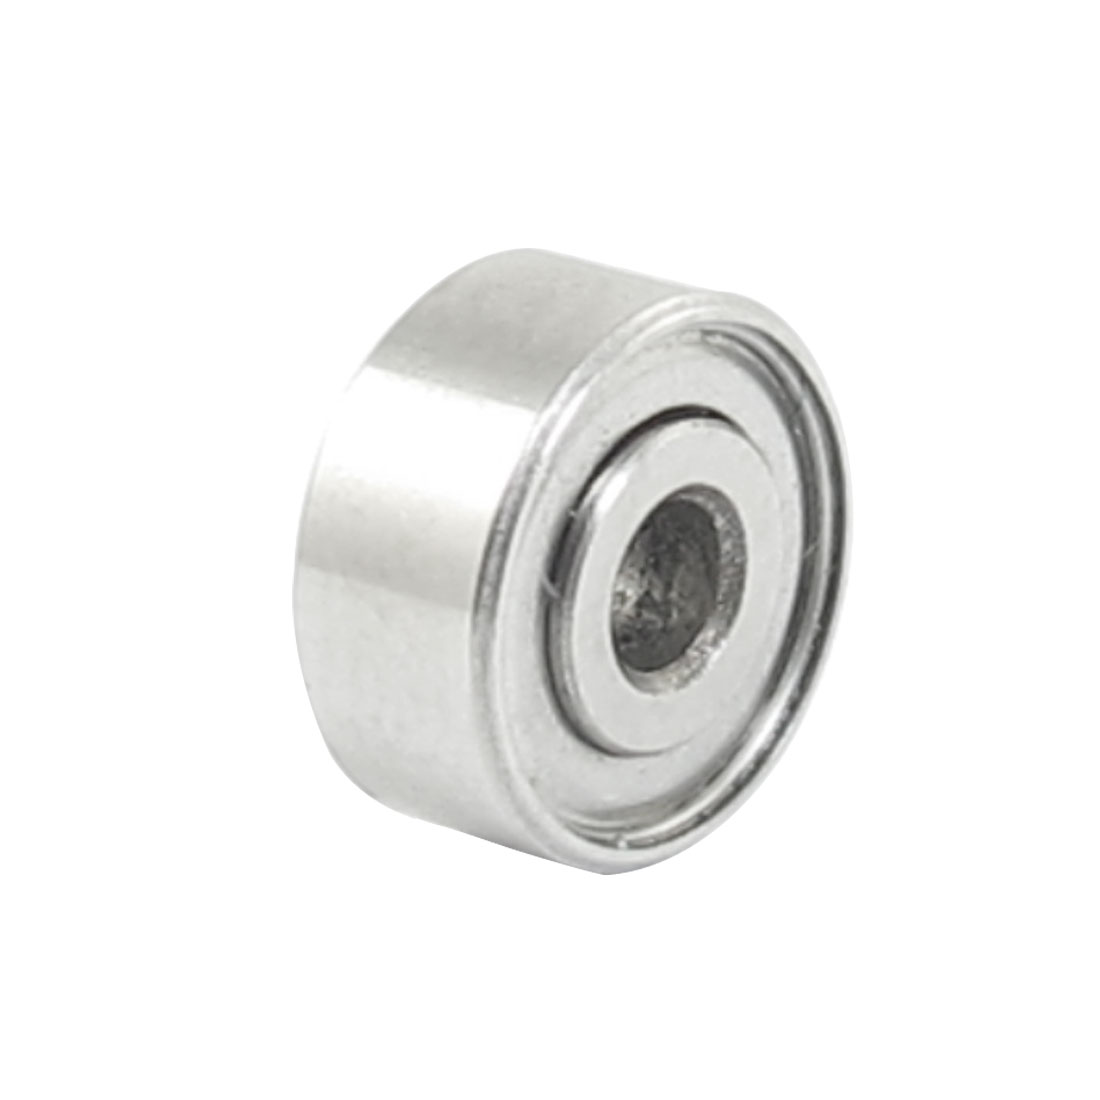 8mm x 2.5mm x 4mm Shielded Deep Groove Radial Ball Bearing Silver Tone